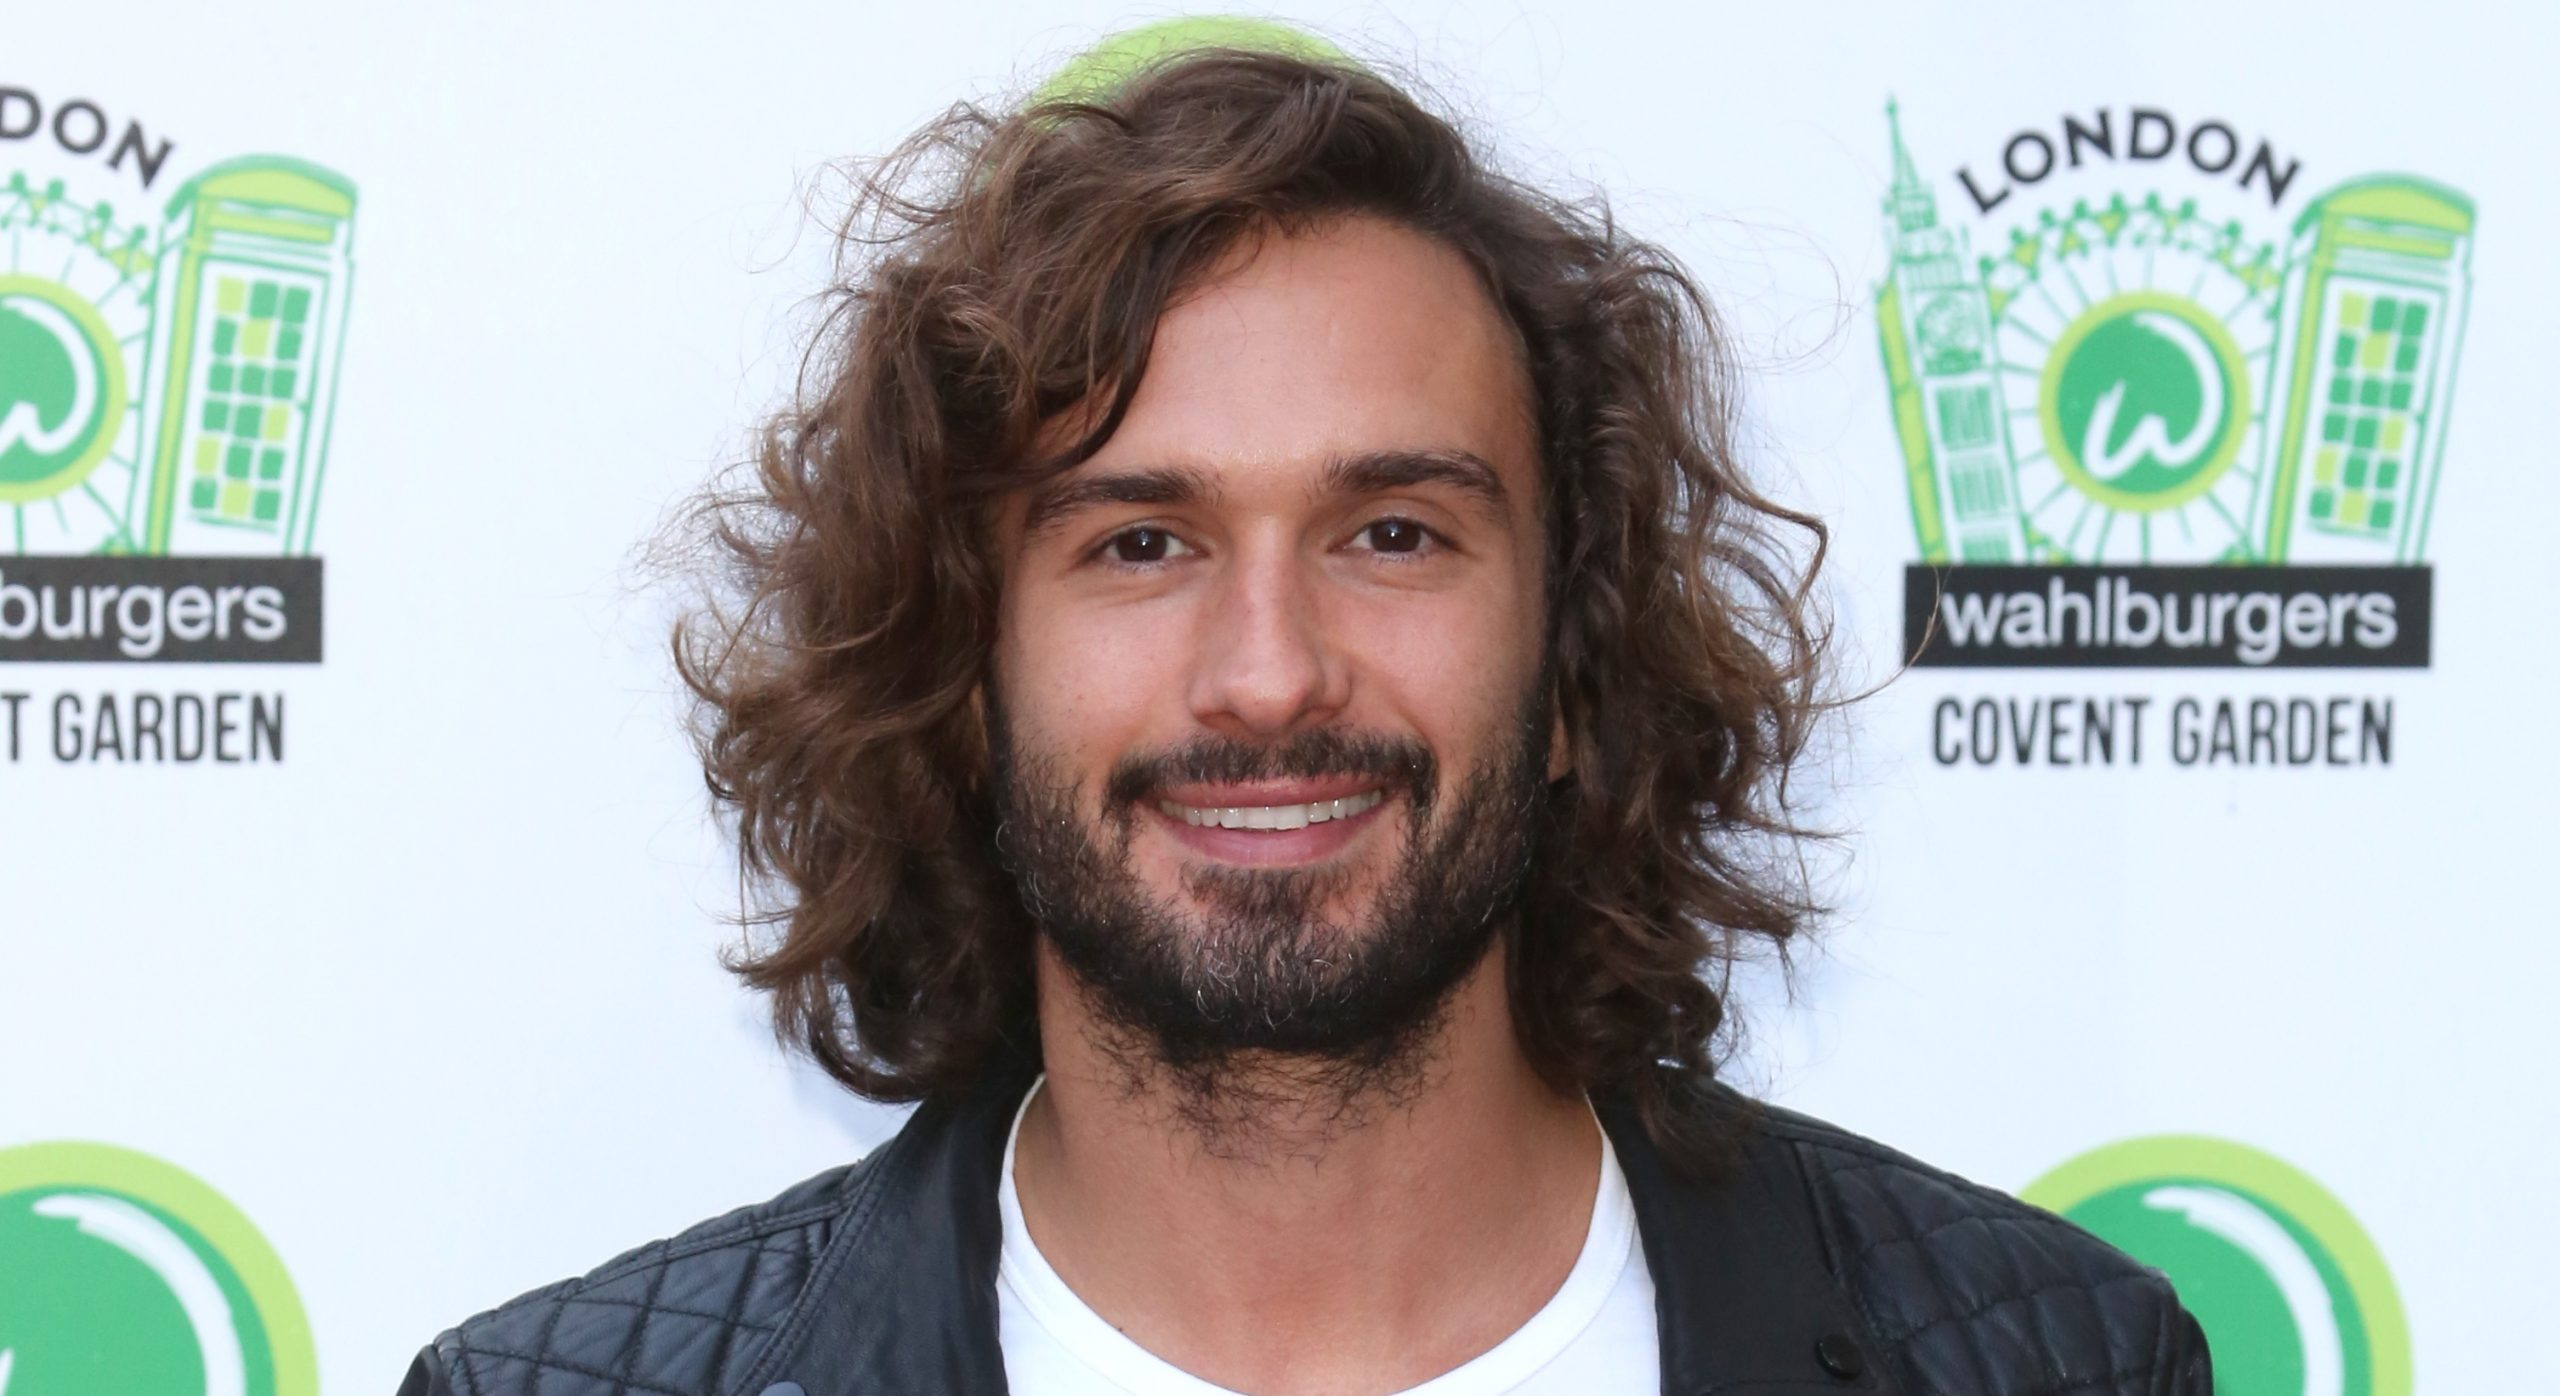 Joe Wicks announces he'll be donating the proceeds of his online P.E. sessions to the NHS